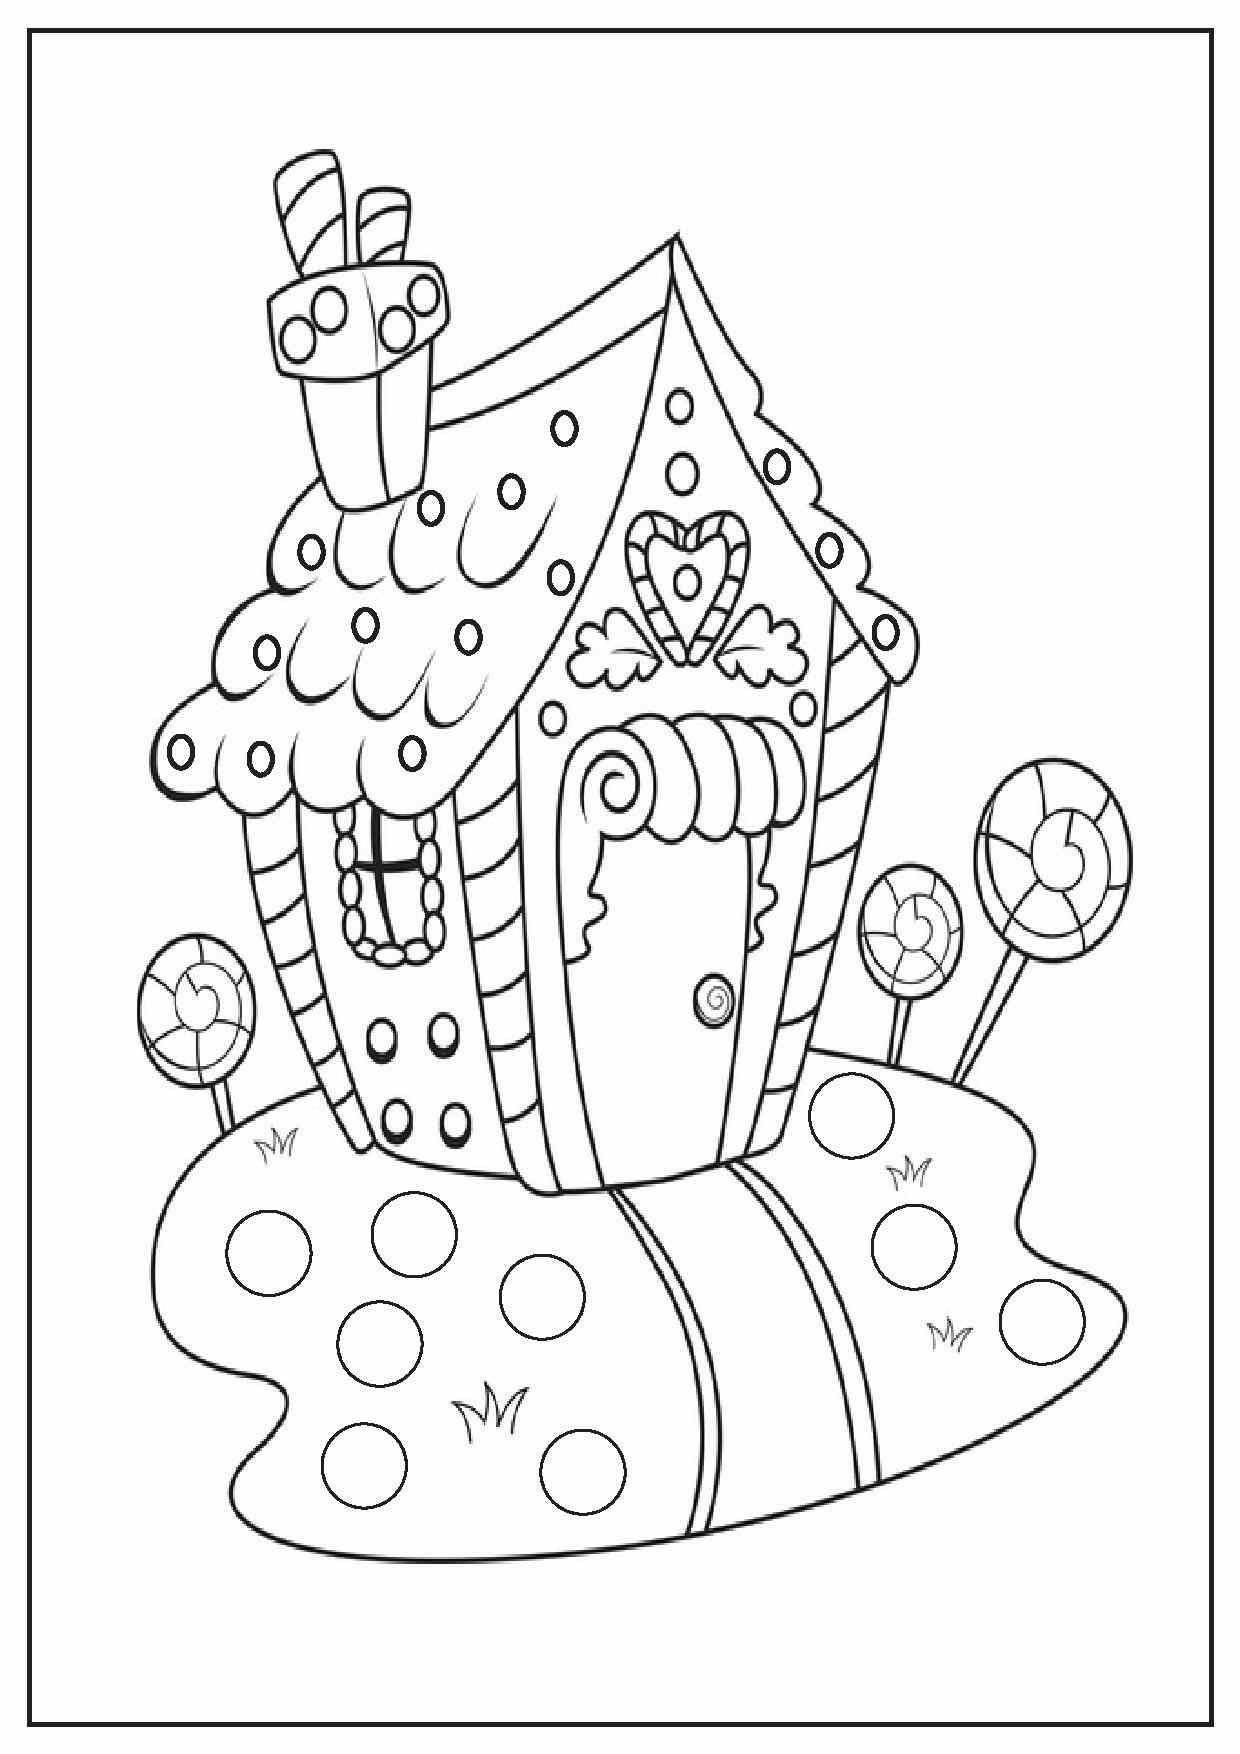 Kindergarten coloring sheets printable coloring pages sheets for kids get the latest free kindergarten coloring sheets images favorite coloring pages to